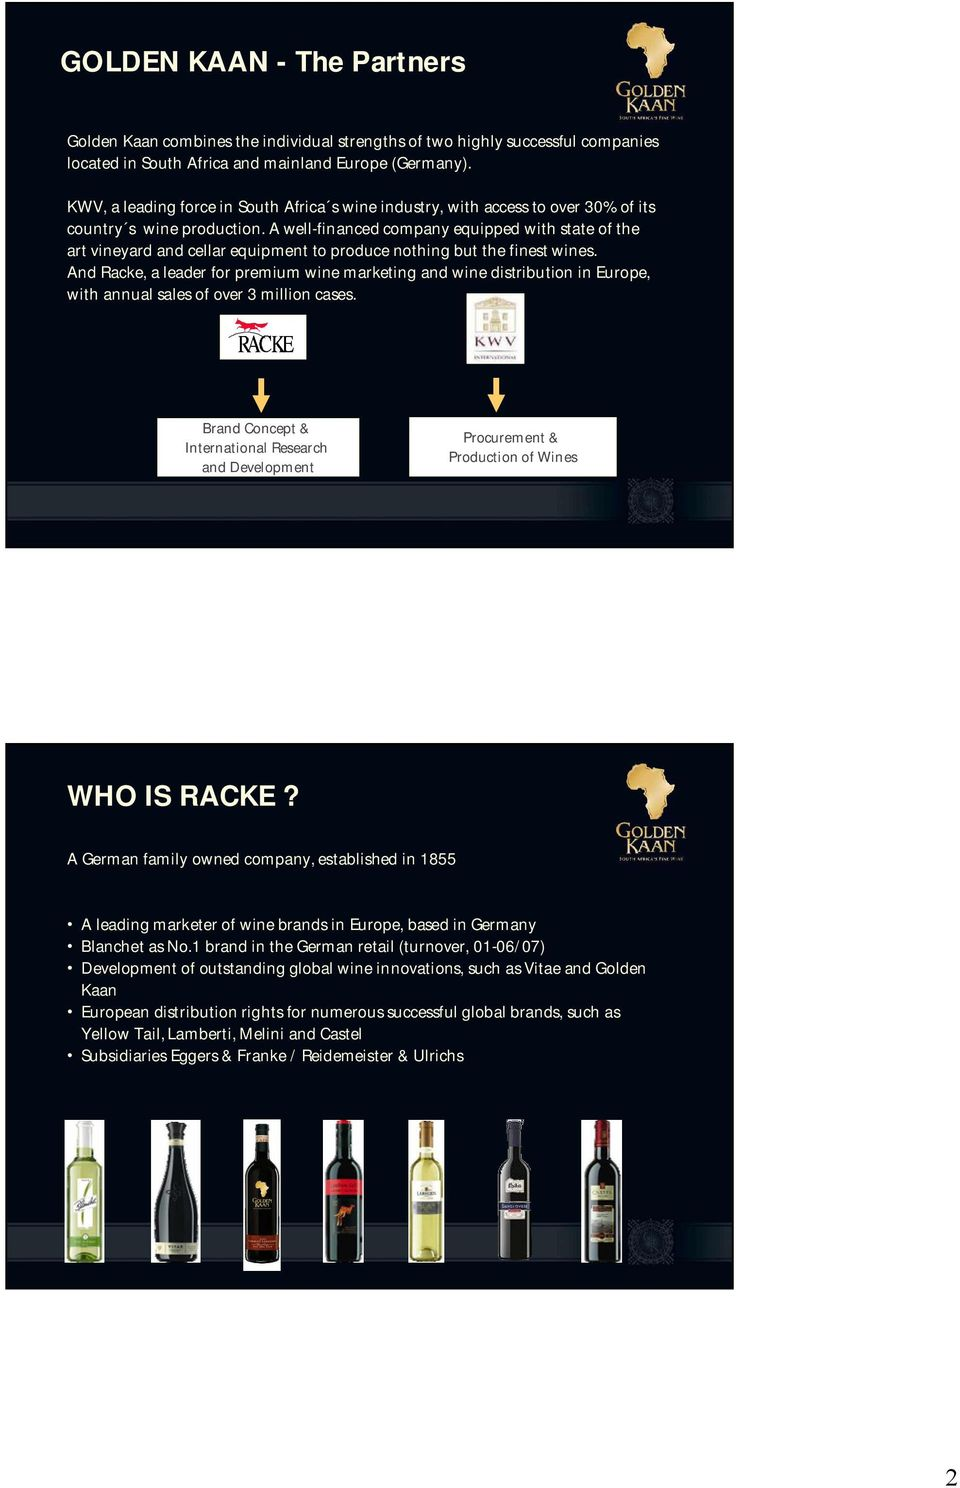 Golden Kaan A Global Brand Pdf Circuit Board Identification Promotiononline Shopping For Promotional Well Financed Company Equipped With State Of The Art Vineyard And Cellar Equipment To